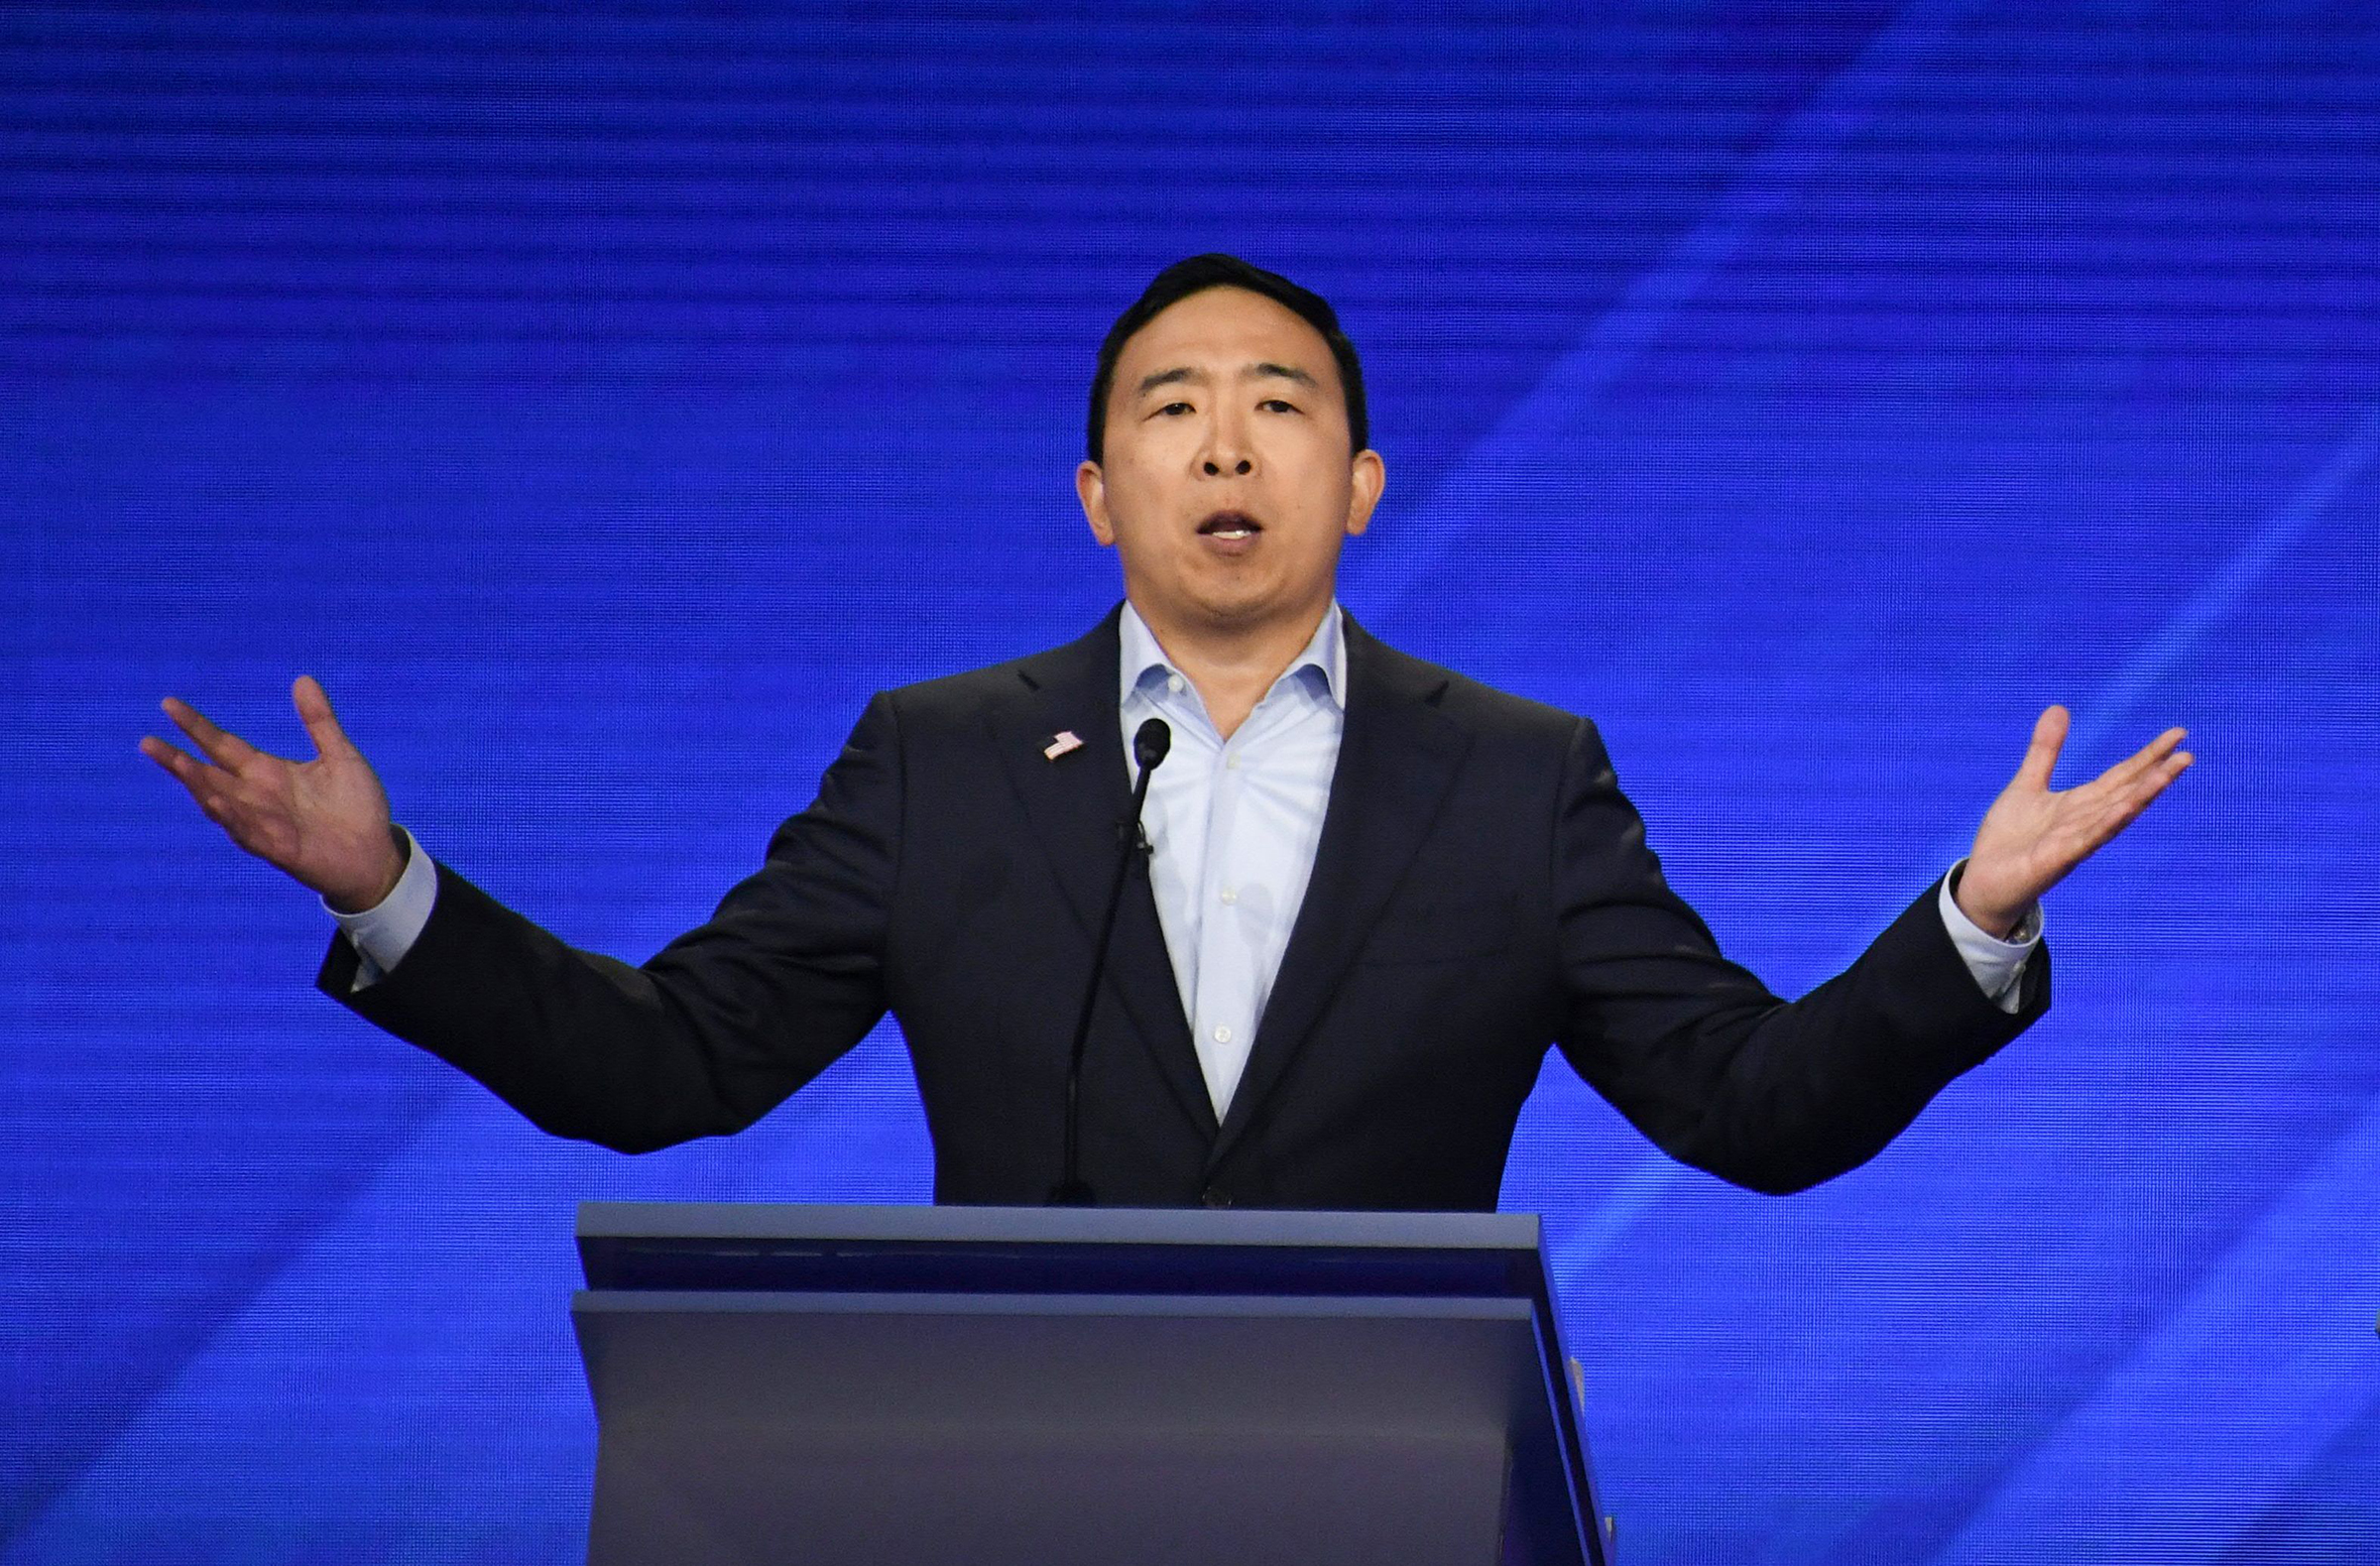 Democratic presidential hopeful Tech entrepreneur Andrew Yang speaks during the third Democratic primary debate of the 2020 presidential campaign season at Texas Southern University in Houston, Texas on September 12, 2019.